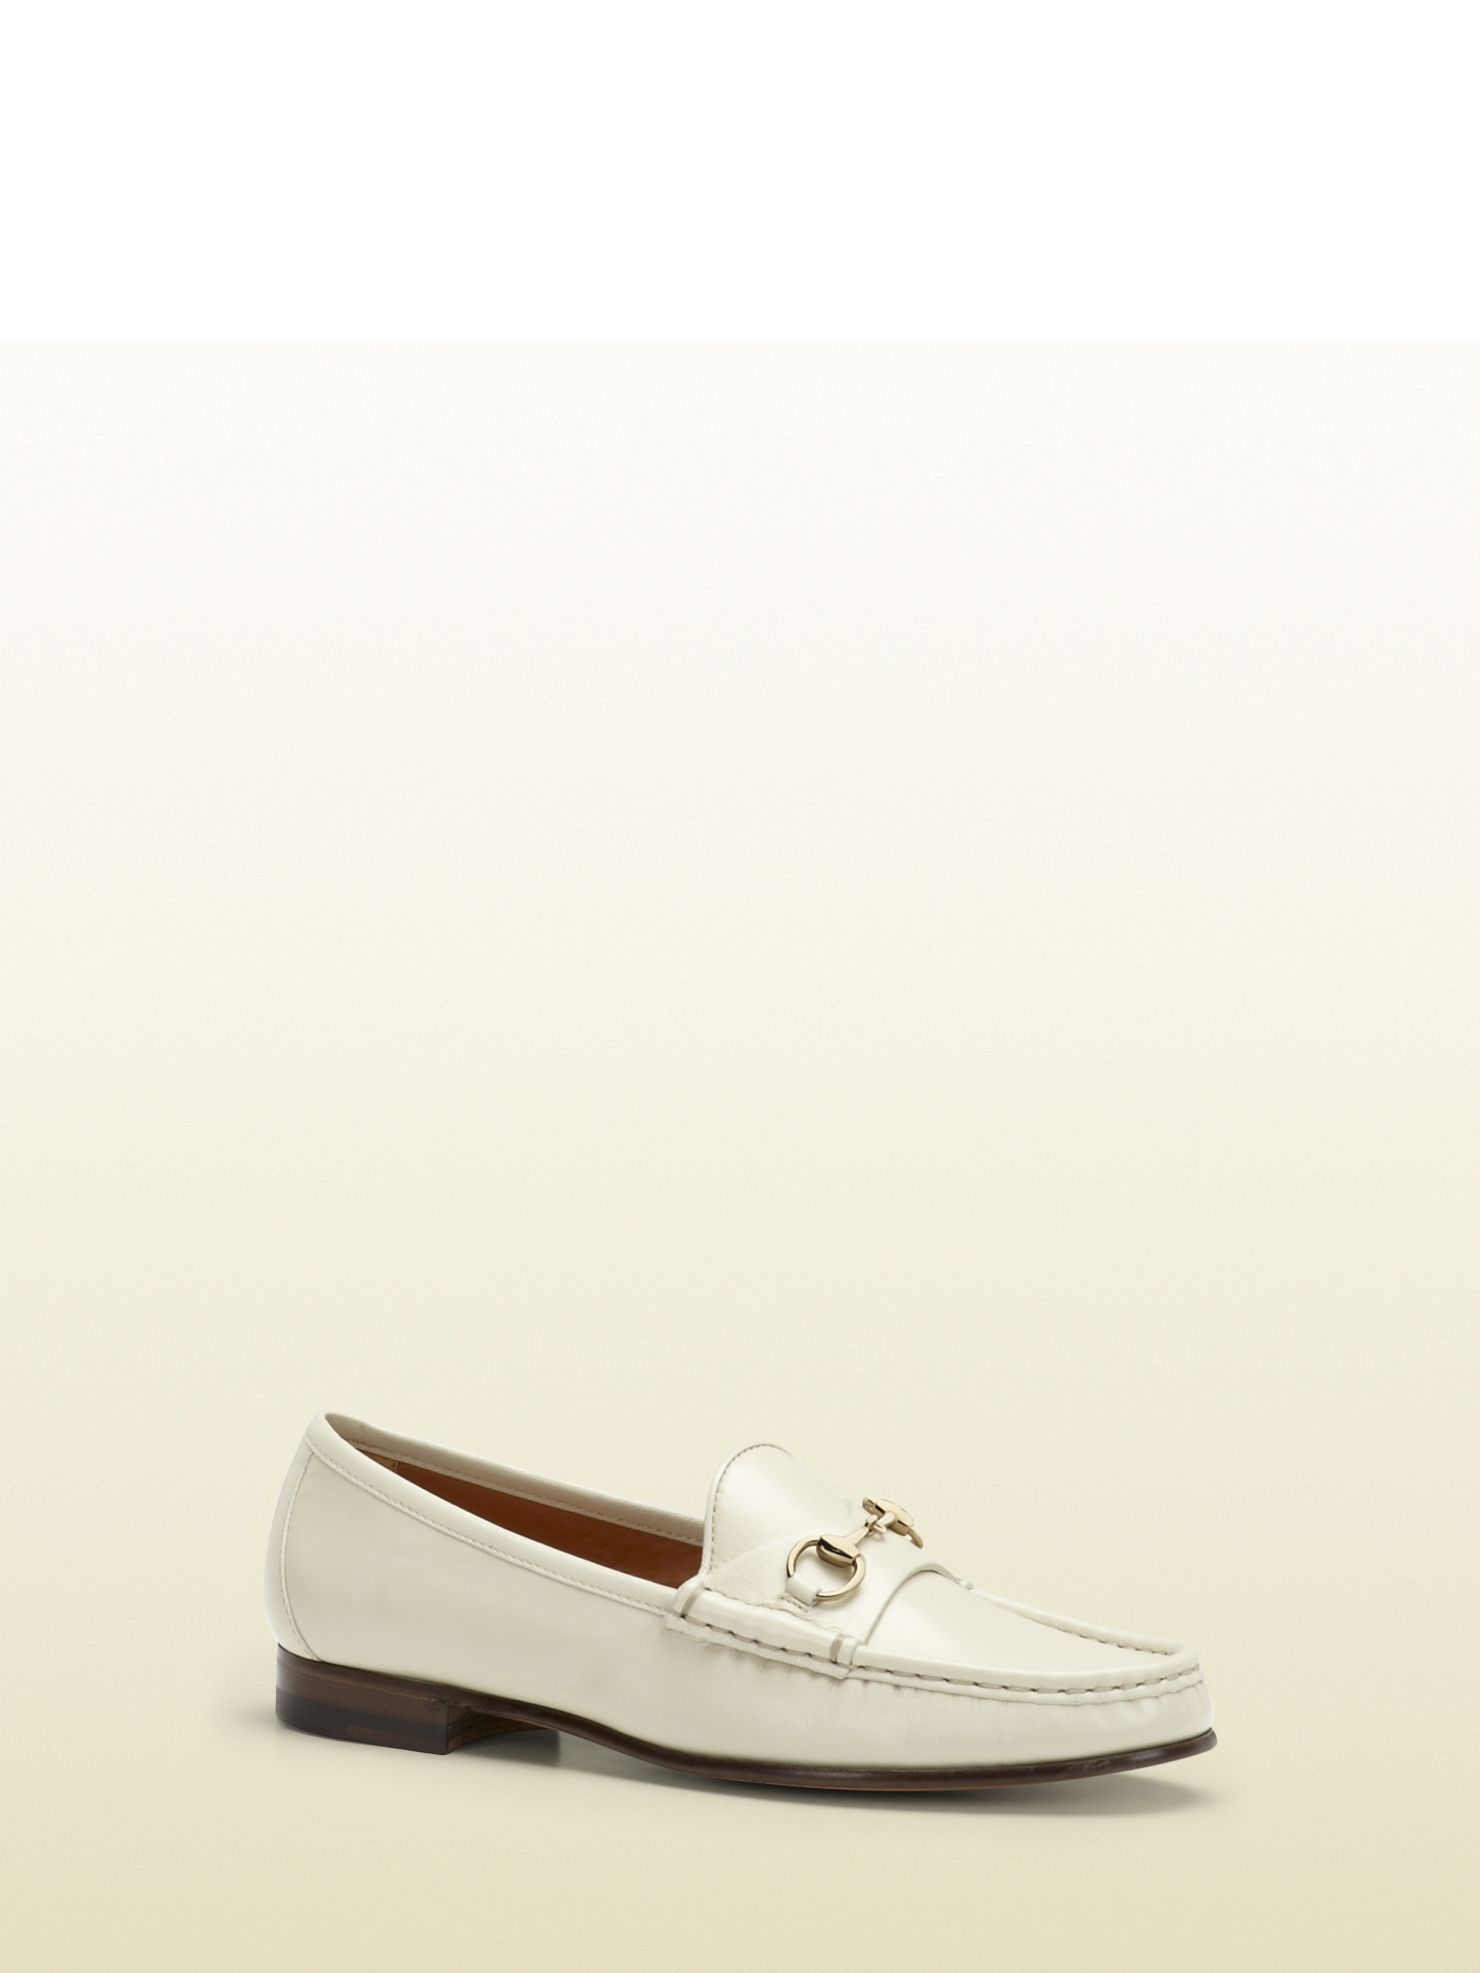 Gucci - 283650 D3V00 1910 - horsebit loafer in leather - women s white  leather light fine gold hardware Made in Italy horsebit detail leather sole 4c08eeb821